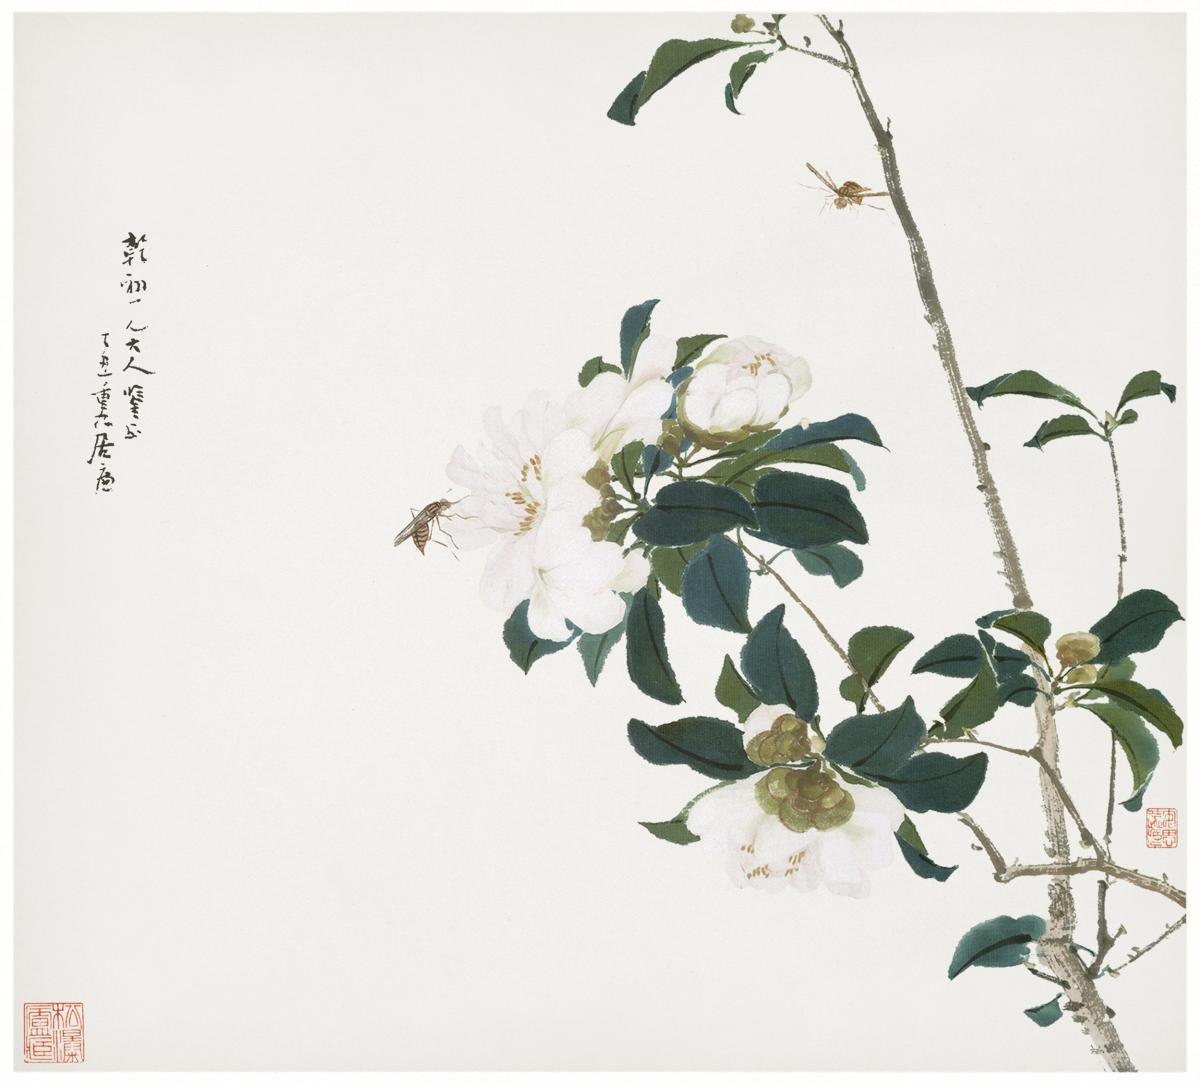 Insects and Flowers (Qing dynasty ca. 1644–1911) by Ju Lian. Original from The Getty.